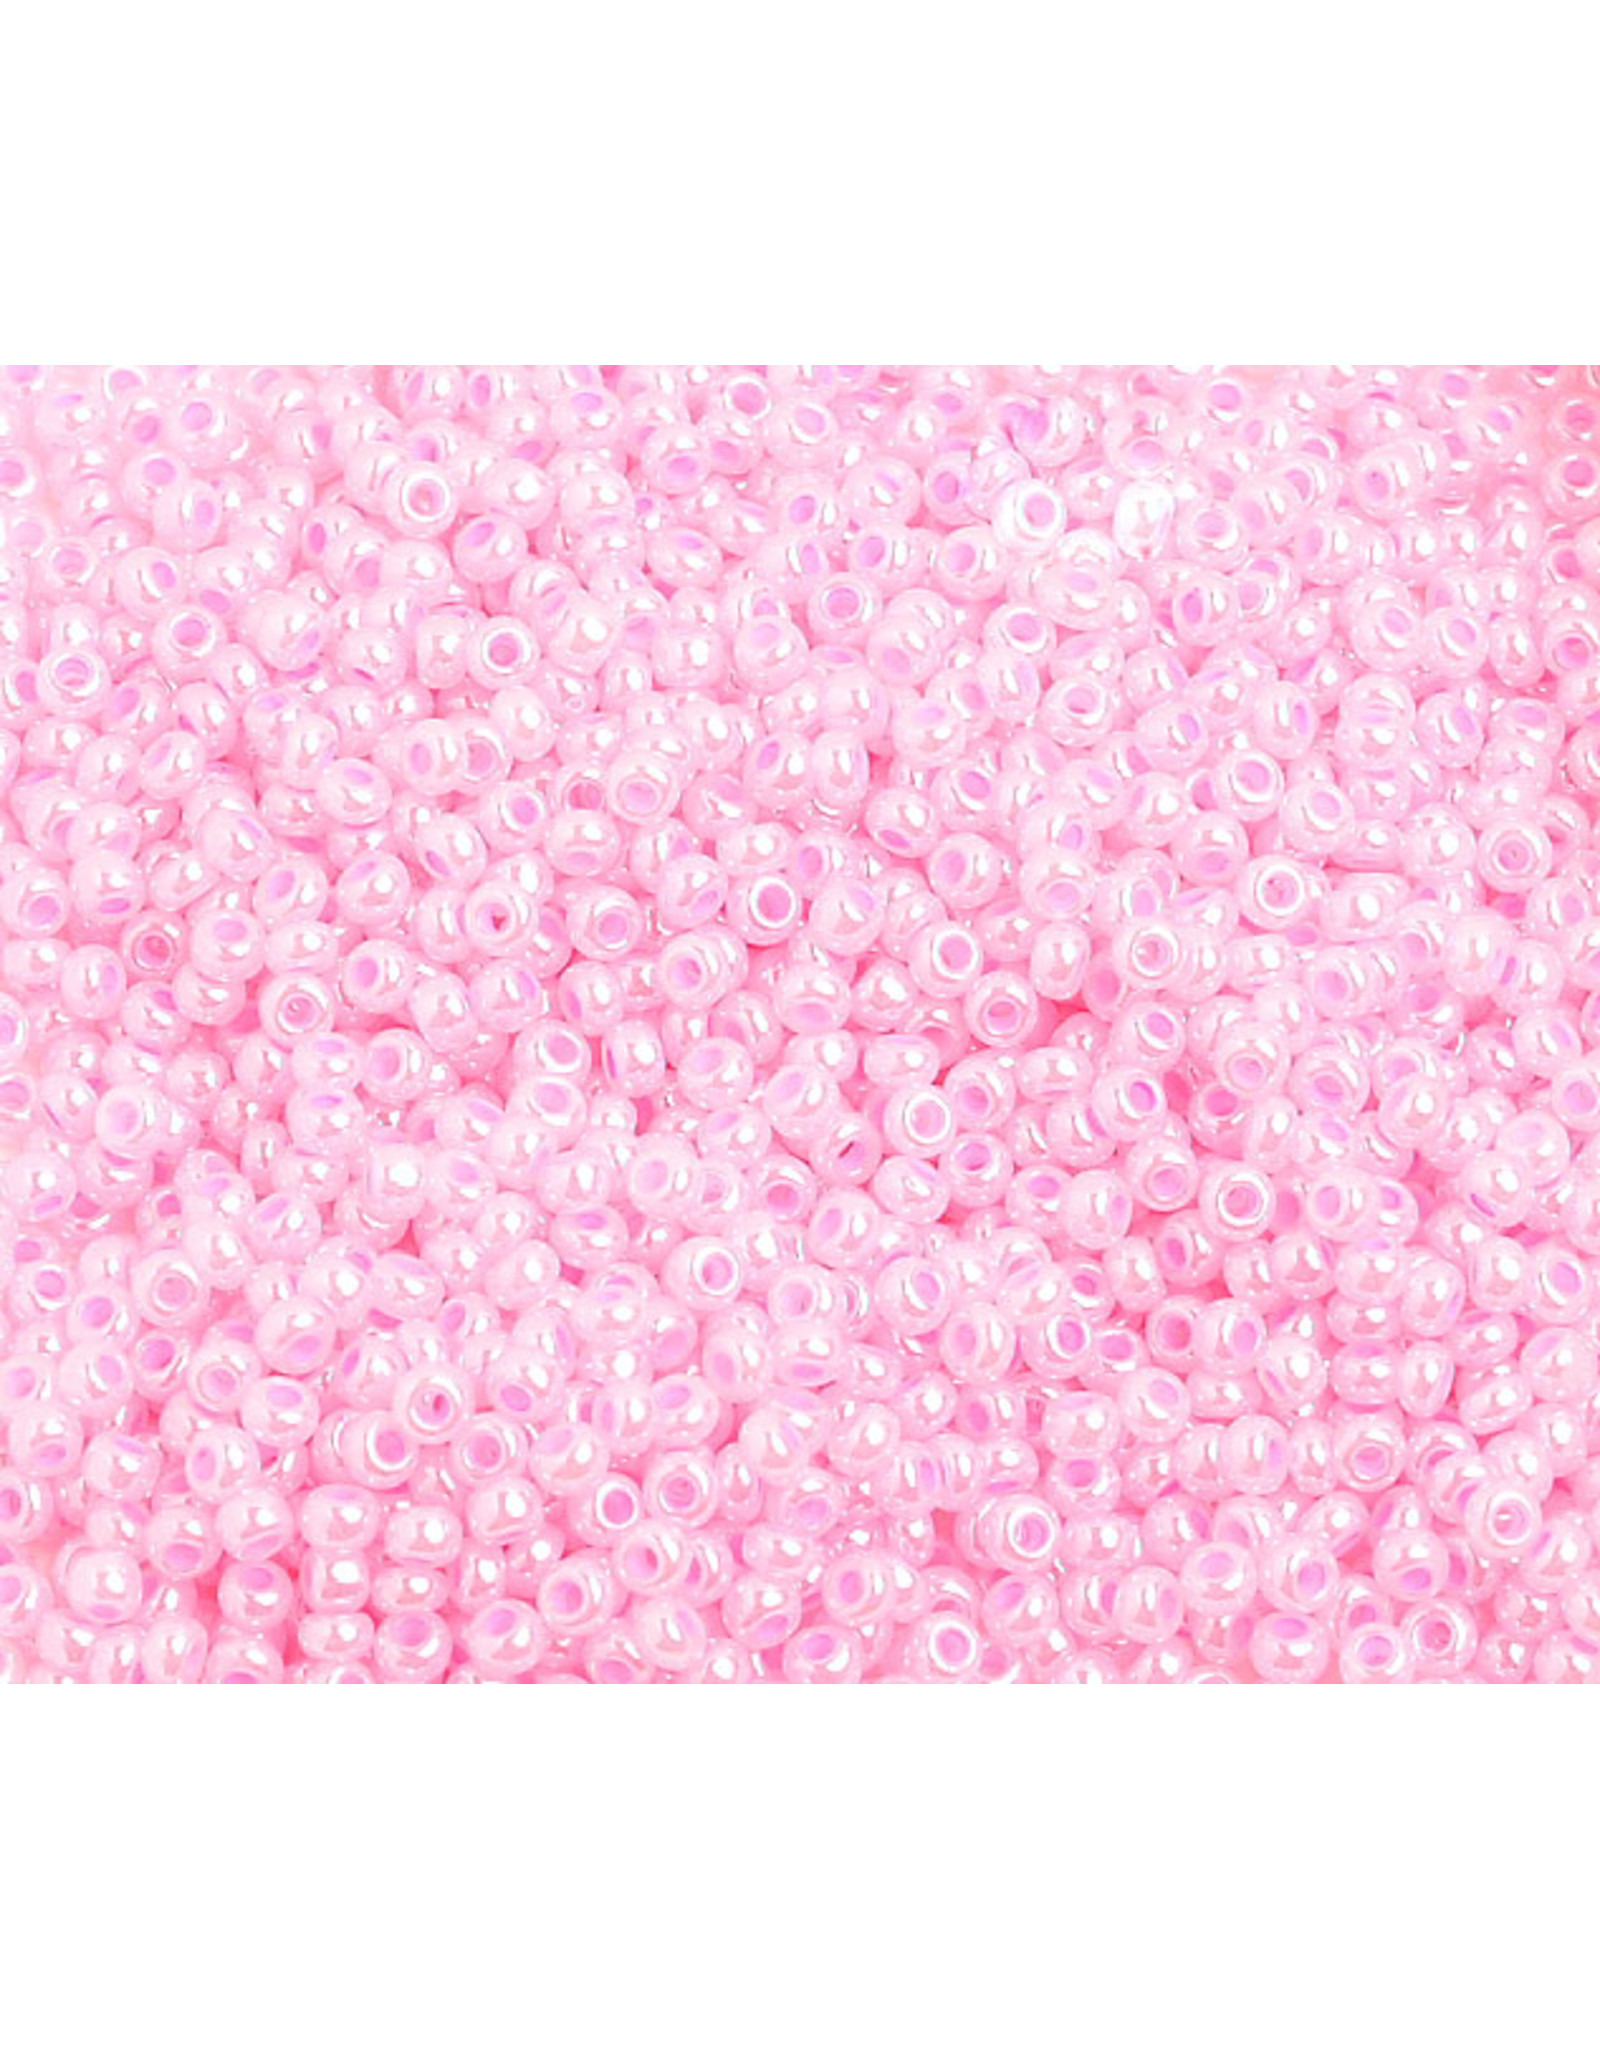 Czech 1429 10 Czech Seed 20g Pink Rose Pearl Dyed